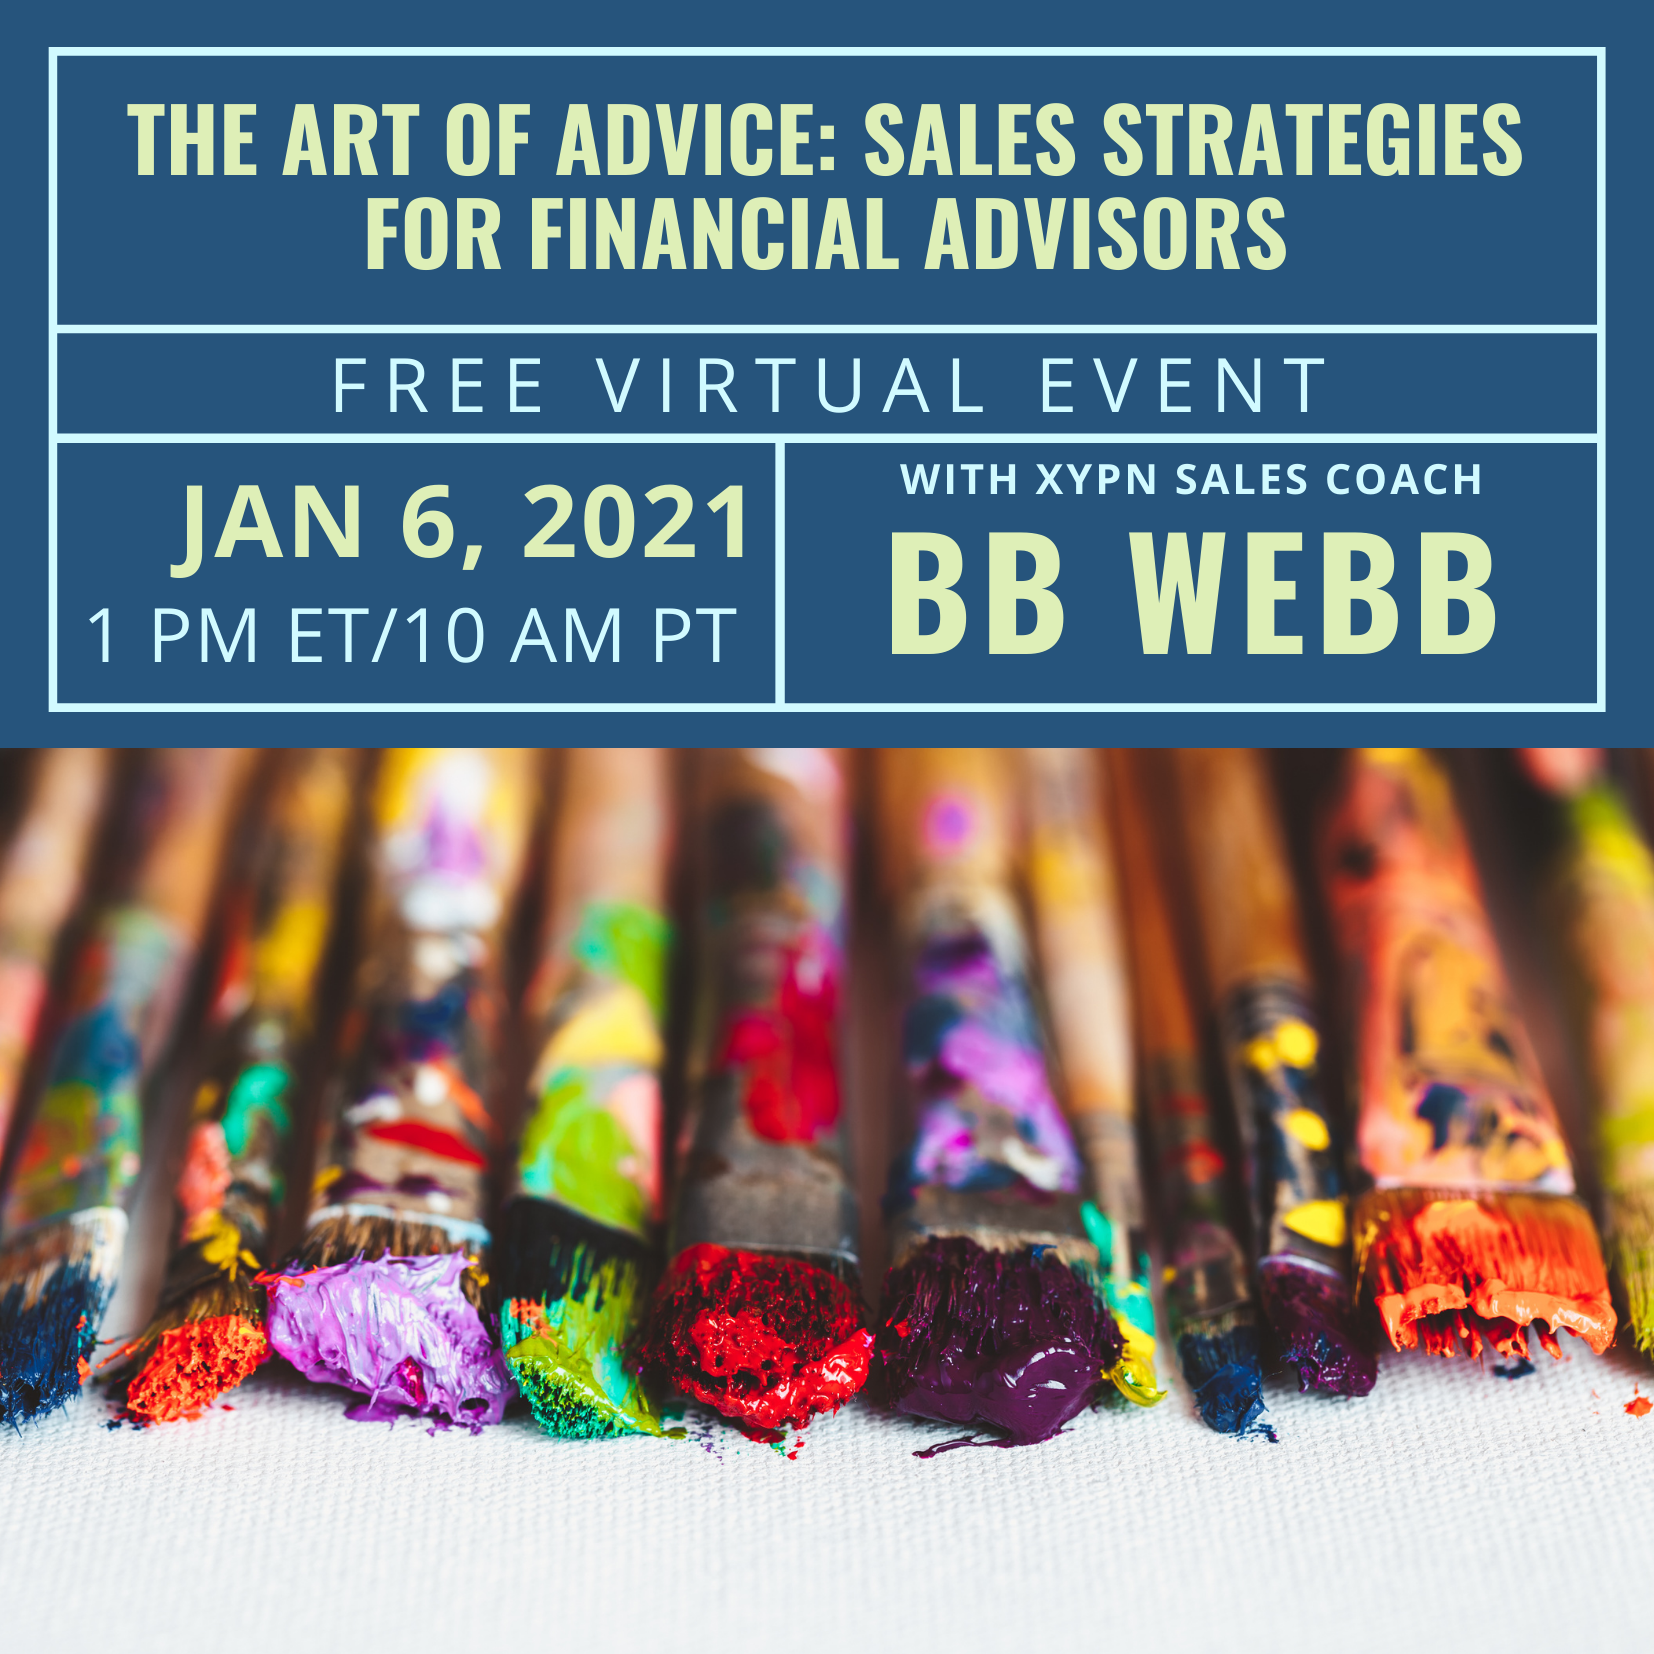 Free Virtual Event: The Art of Advice Sales Strategies for Financial Advisors